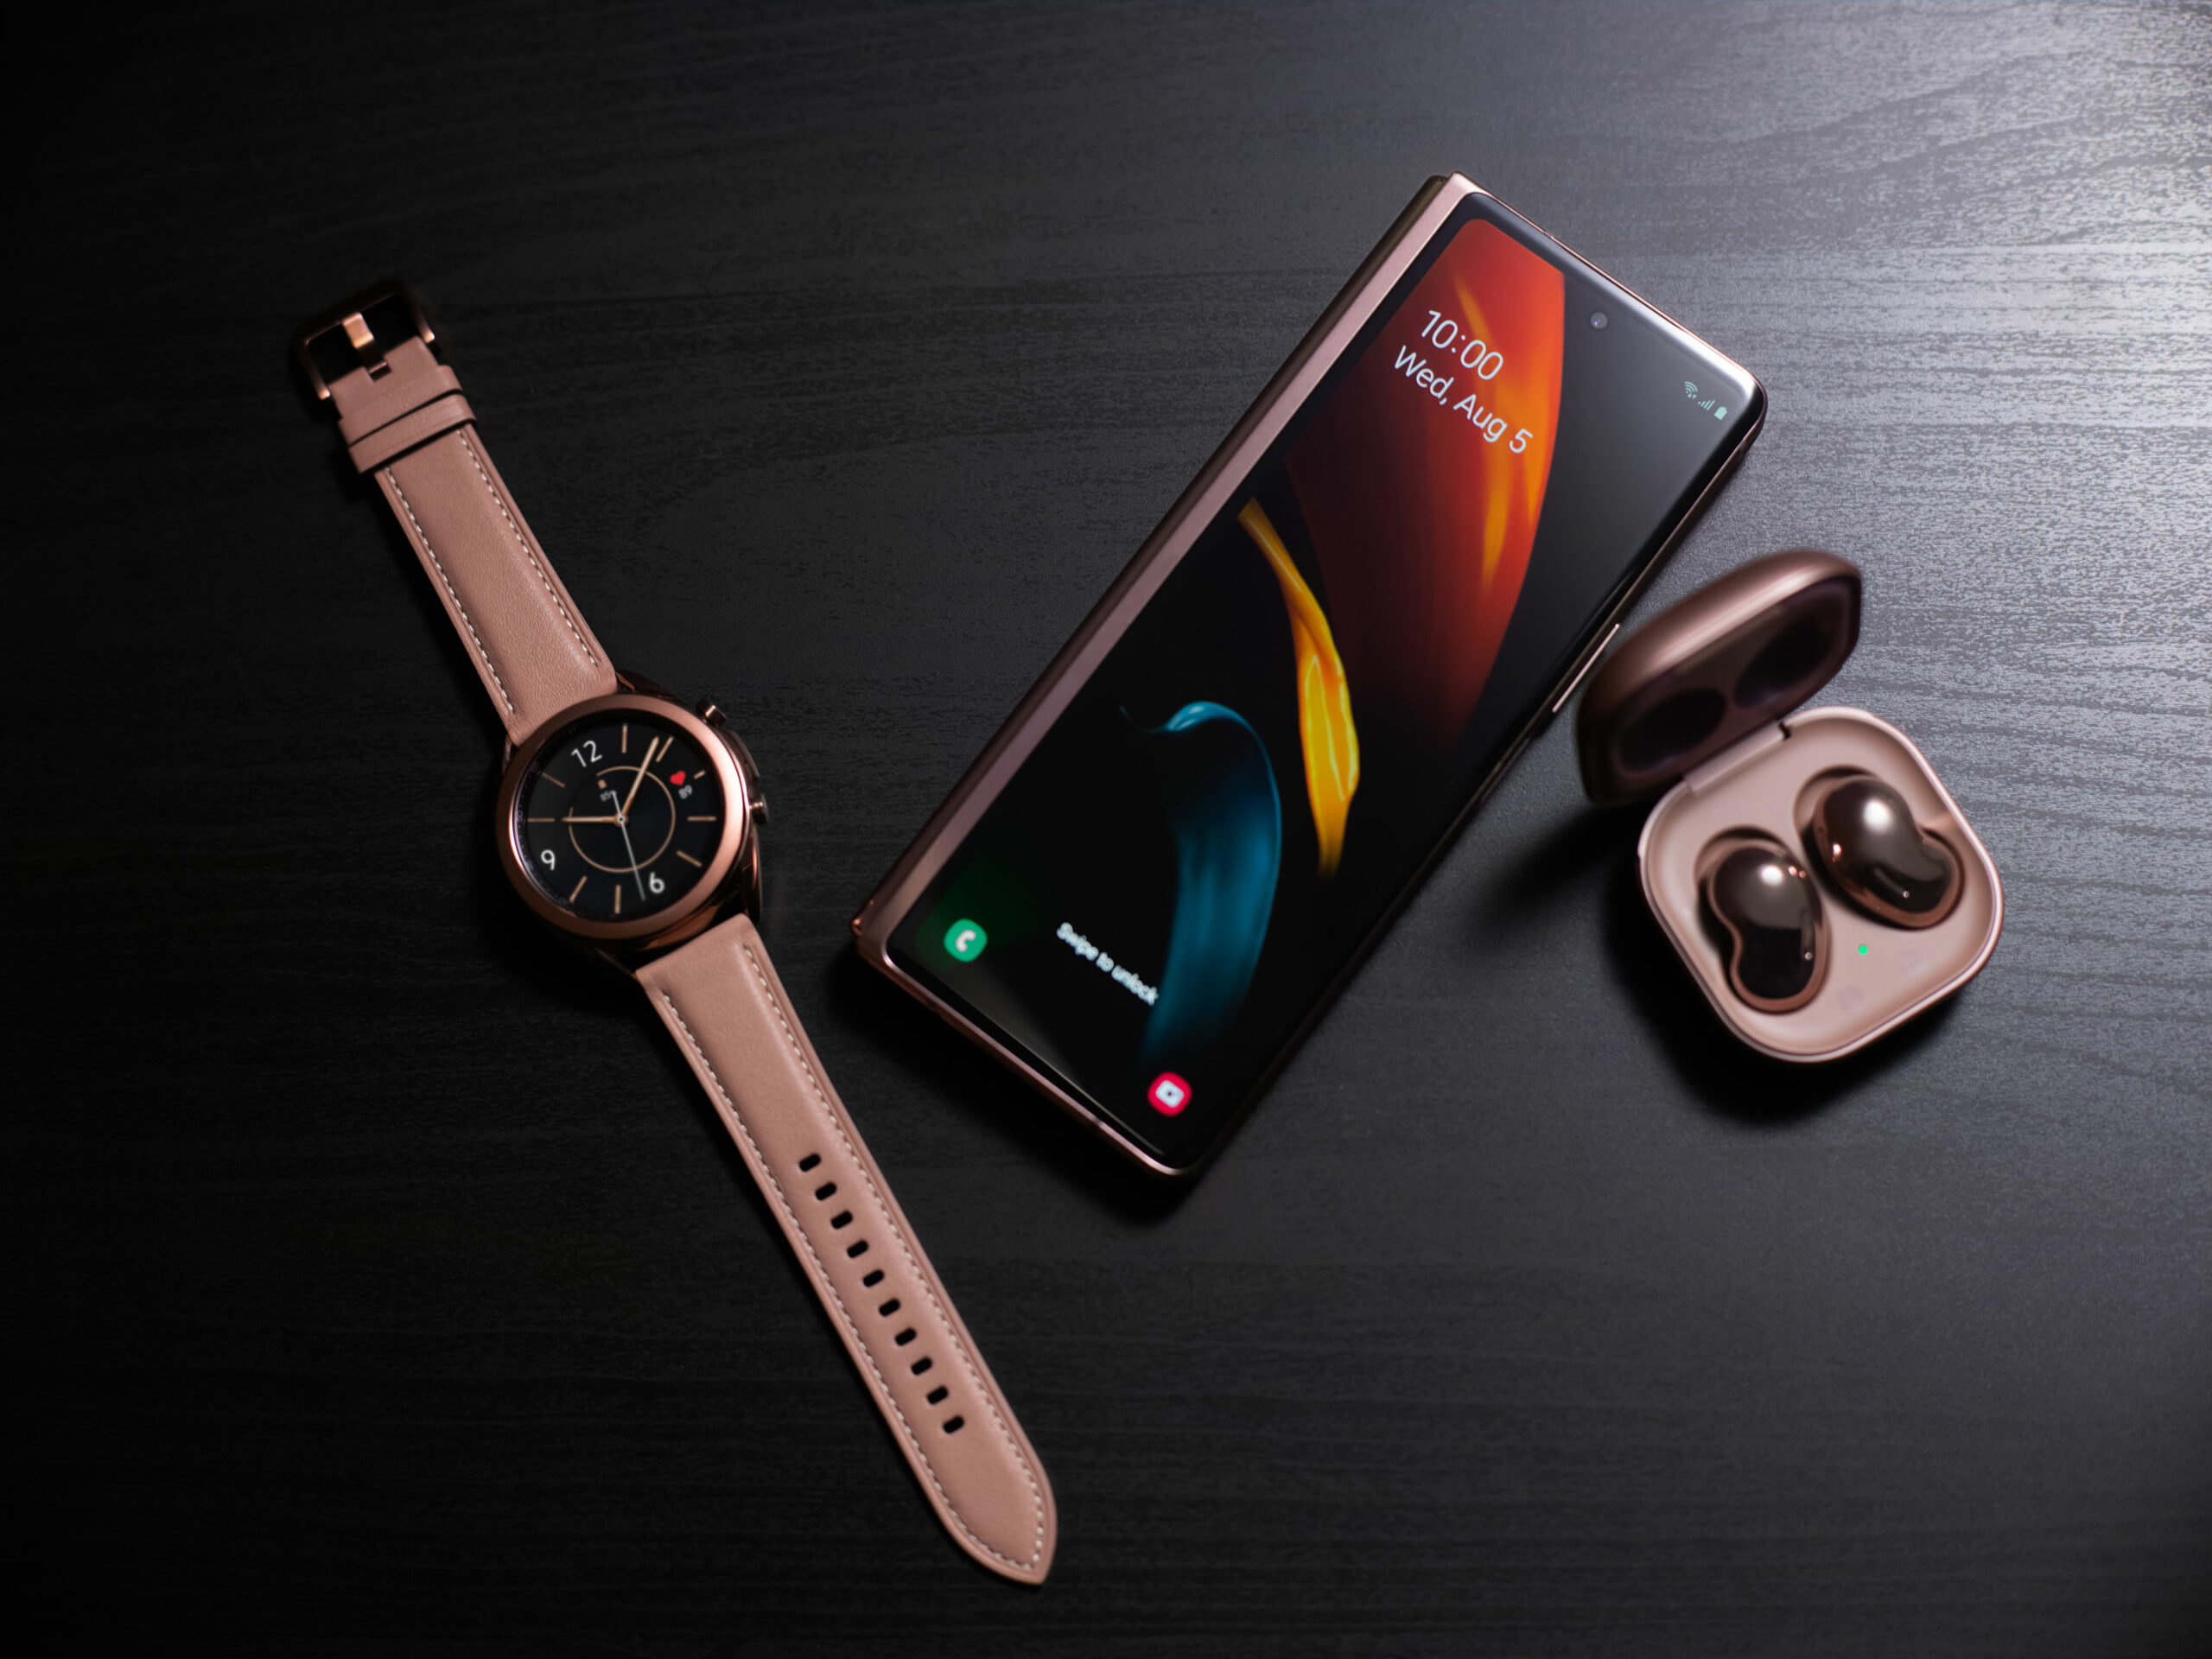 Galazy Z Fold 2, Galaxy Watch 3 and Galaxy Buds Live